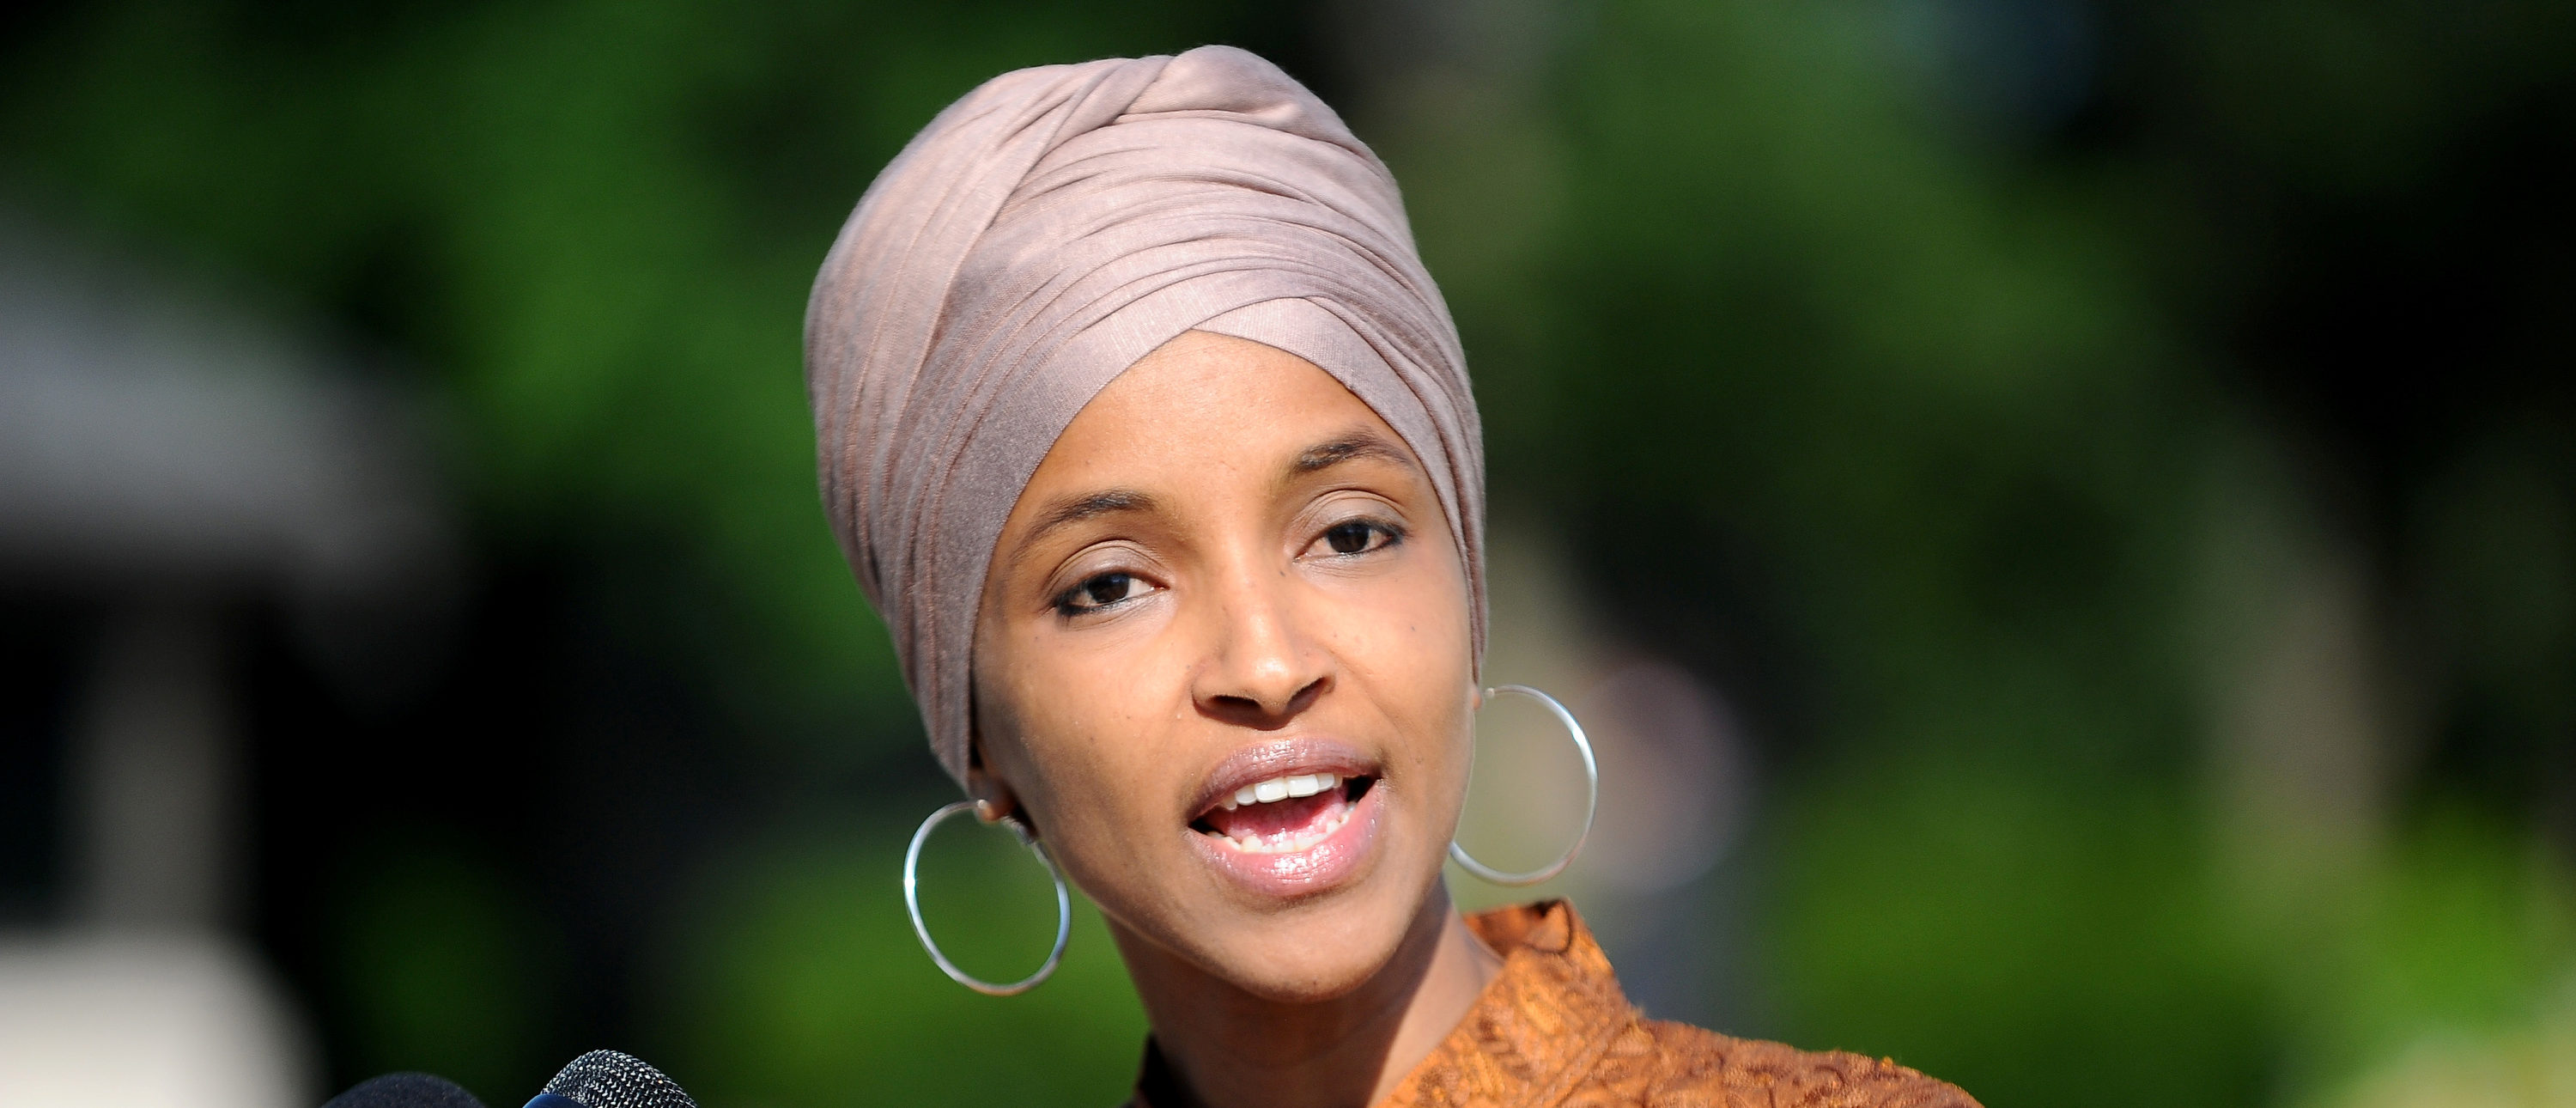 Omar Implies Somali Community Leader Was Paid To Say She Married Her Brother